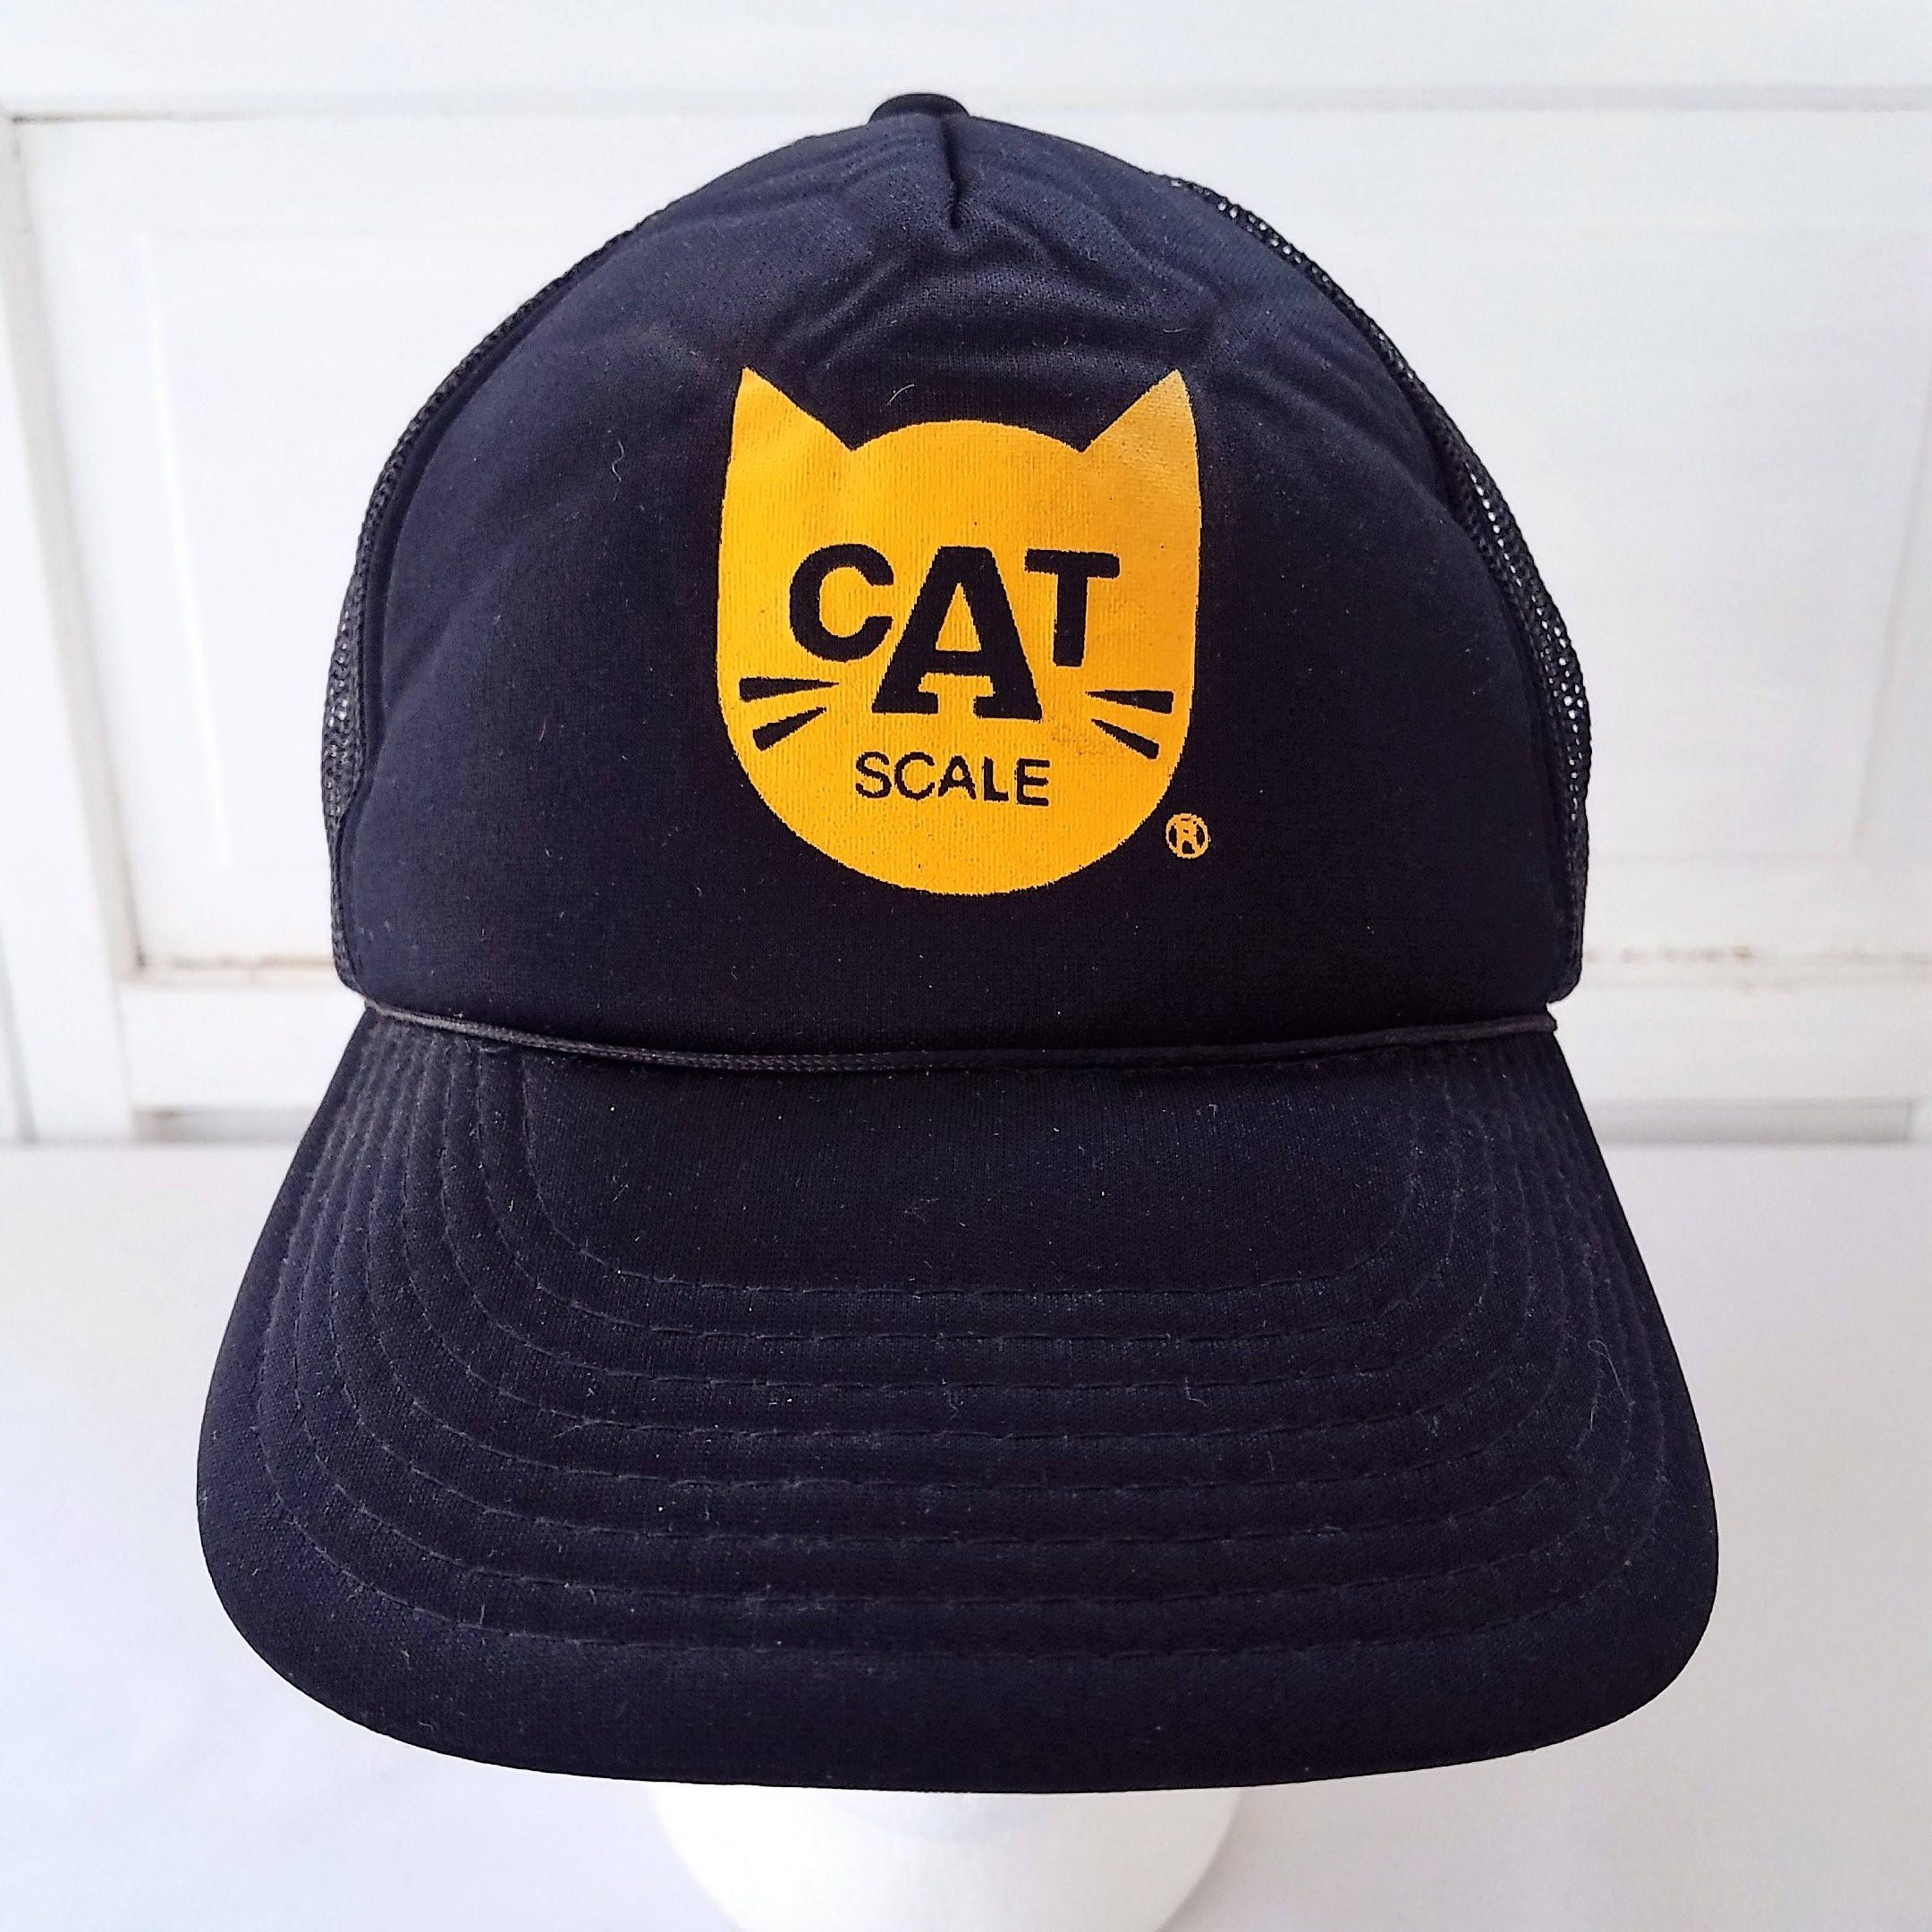 b33da5ce682 Vintage CAT Scale Trucker Hat Cap Snapback Mesh Black Yellow Weigh Station  by TraSheeWomen on Etsy  cat  catscale  weighstation  trucker  truckdriver  ...